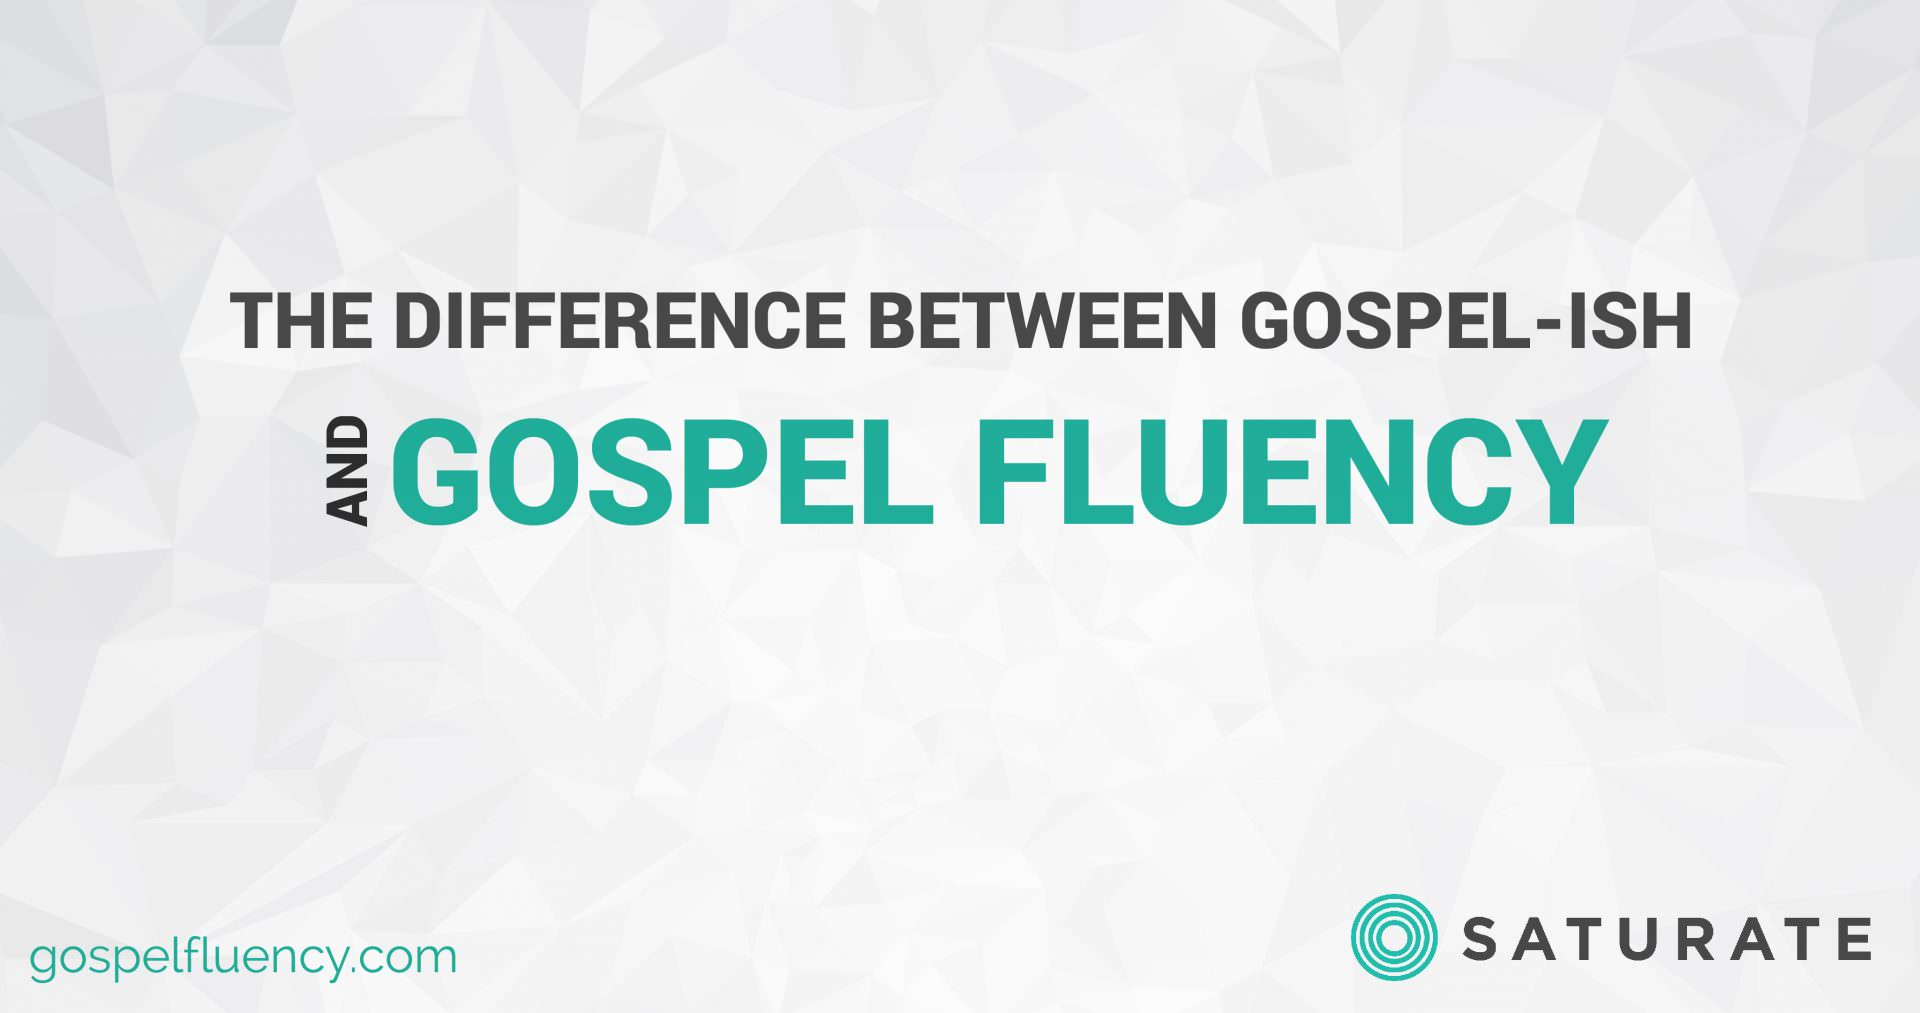 The Difference Between Gospel-ish and Gospel Fluency